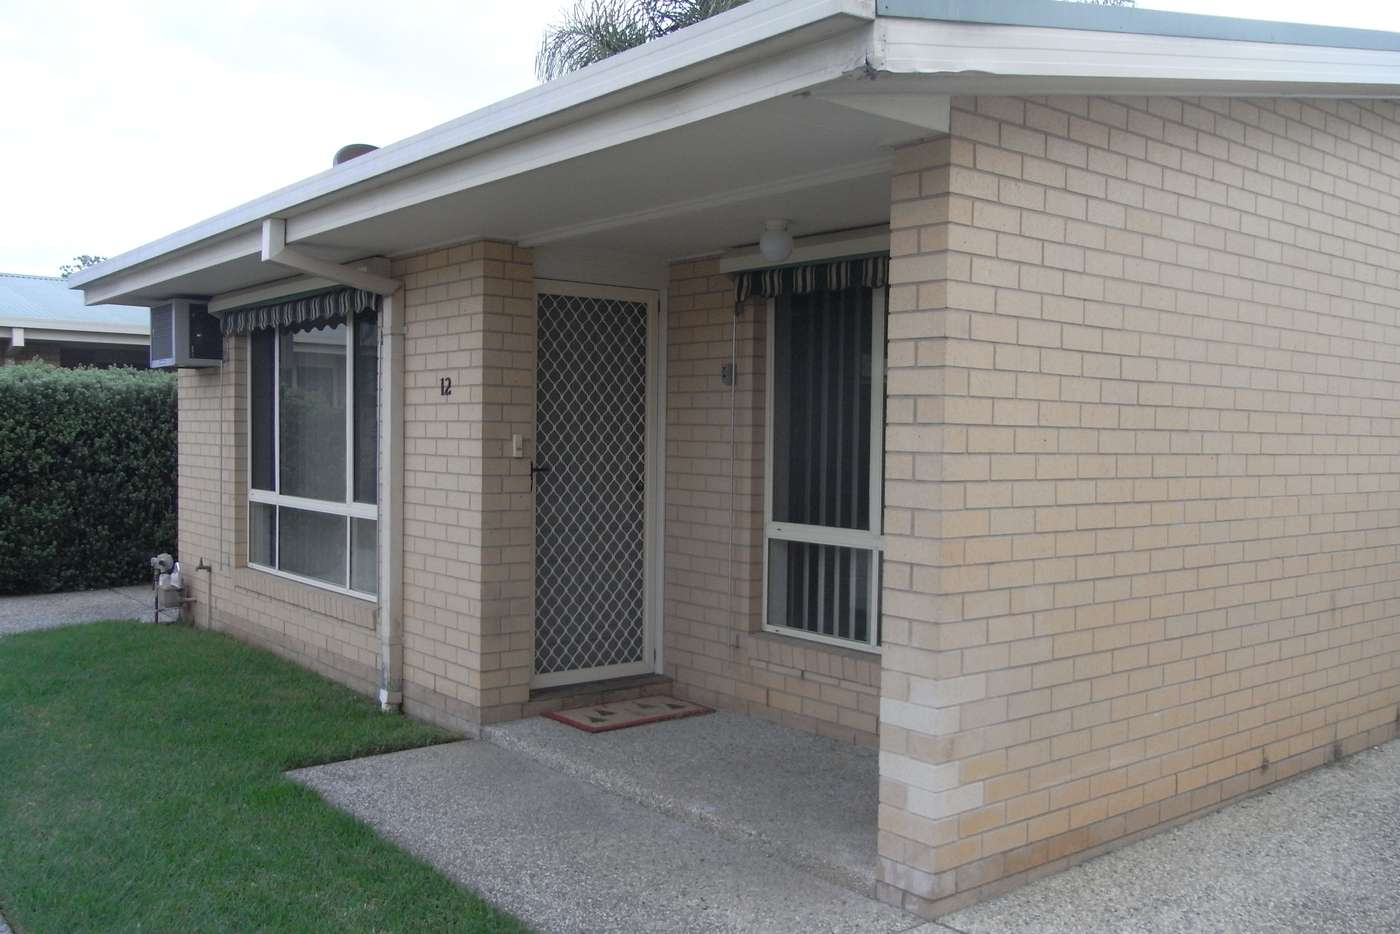 Main view of Homely unit listing, 12/601 Wyse Street, Albury NSW 2640